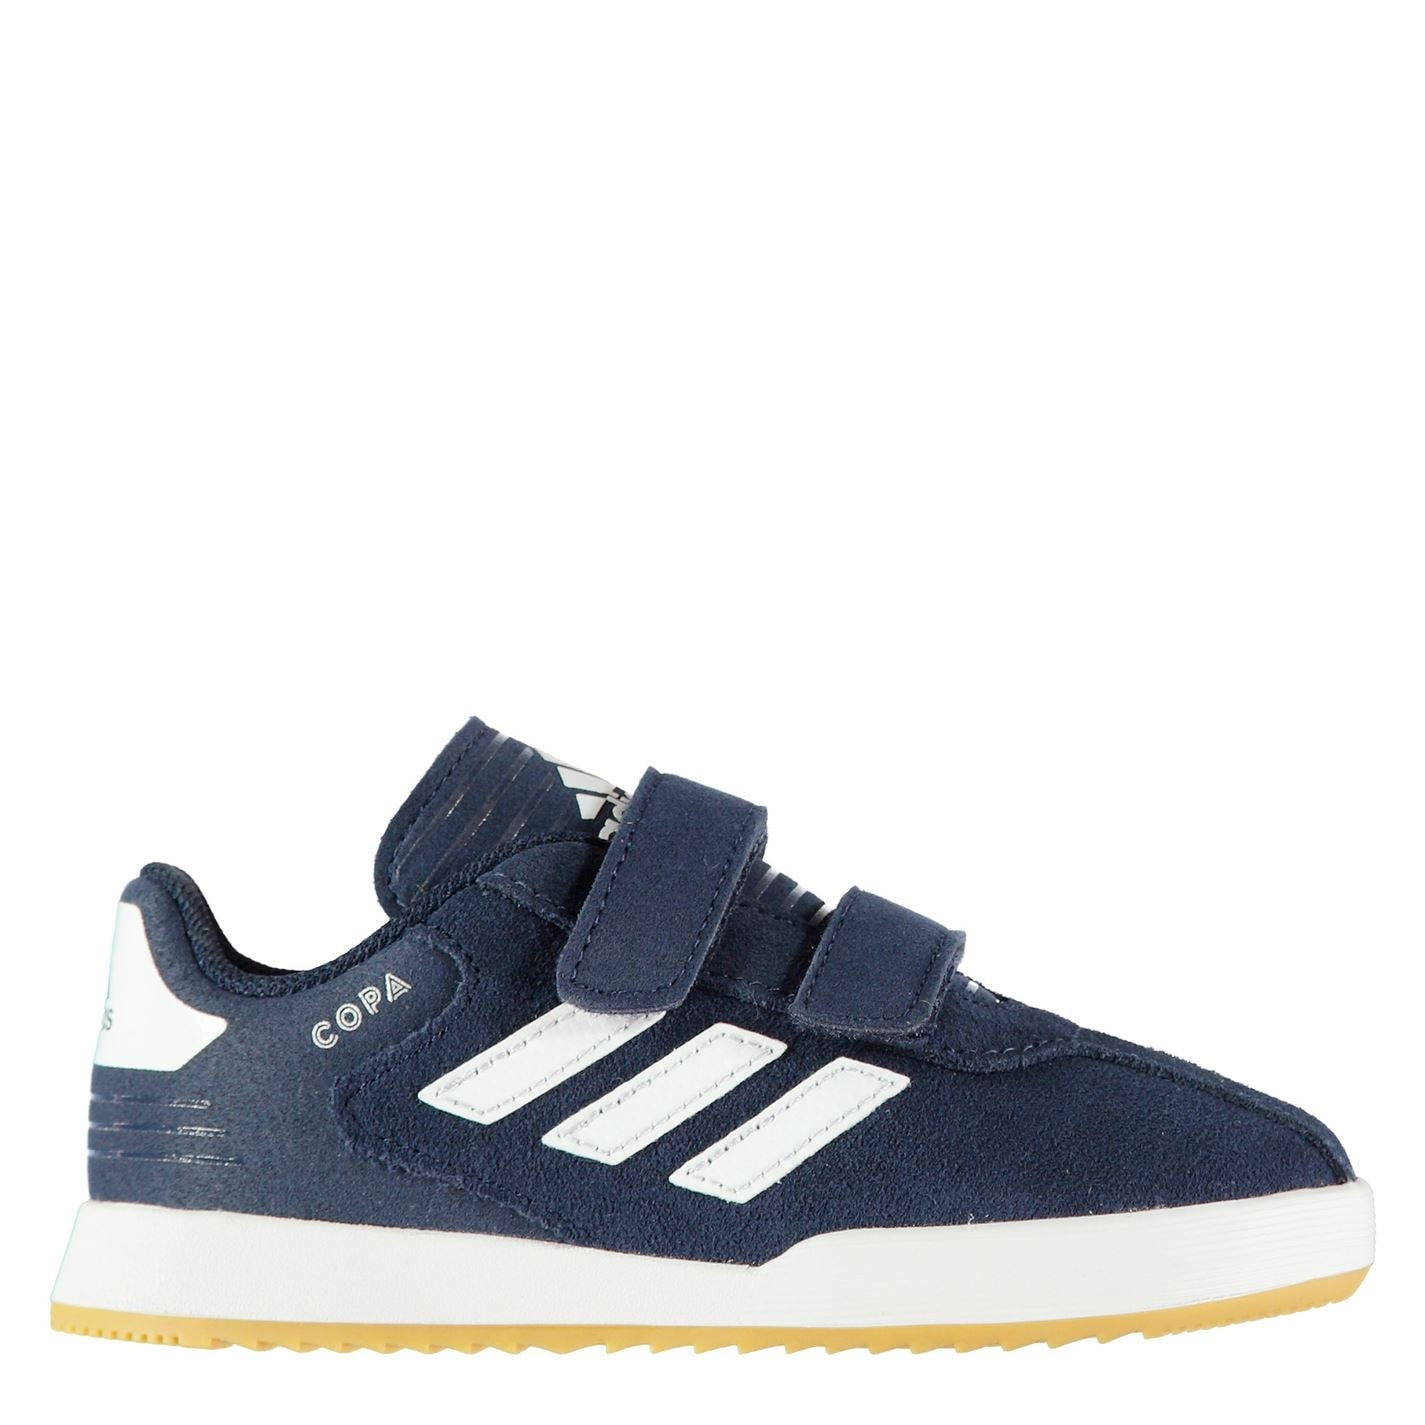 adidas Copa Super Infant Street Trainers Navy/White